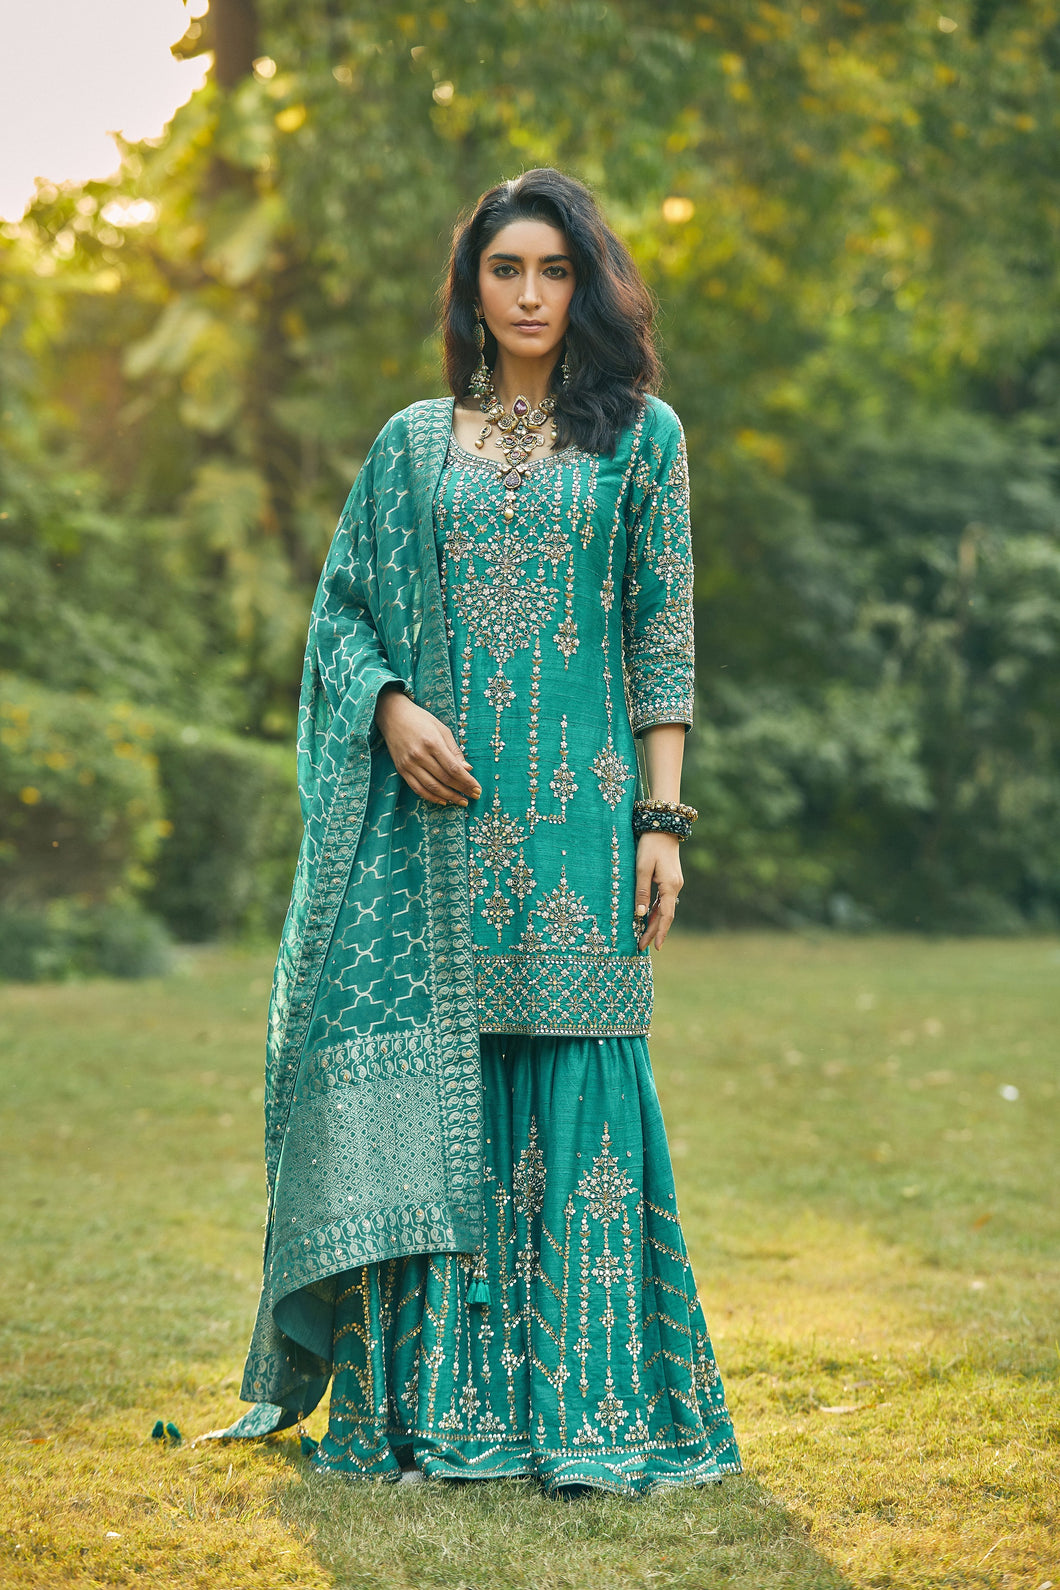 Turquoise Sharara Suit With Dhara Banarasi Dupatta